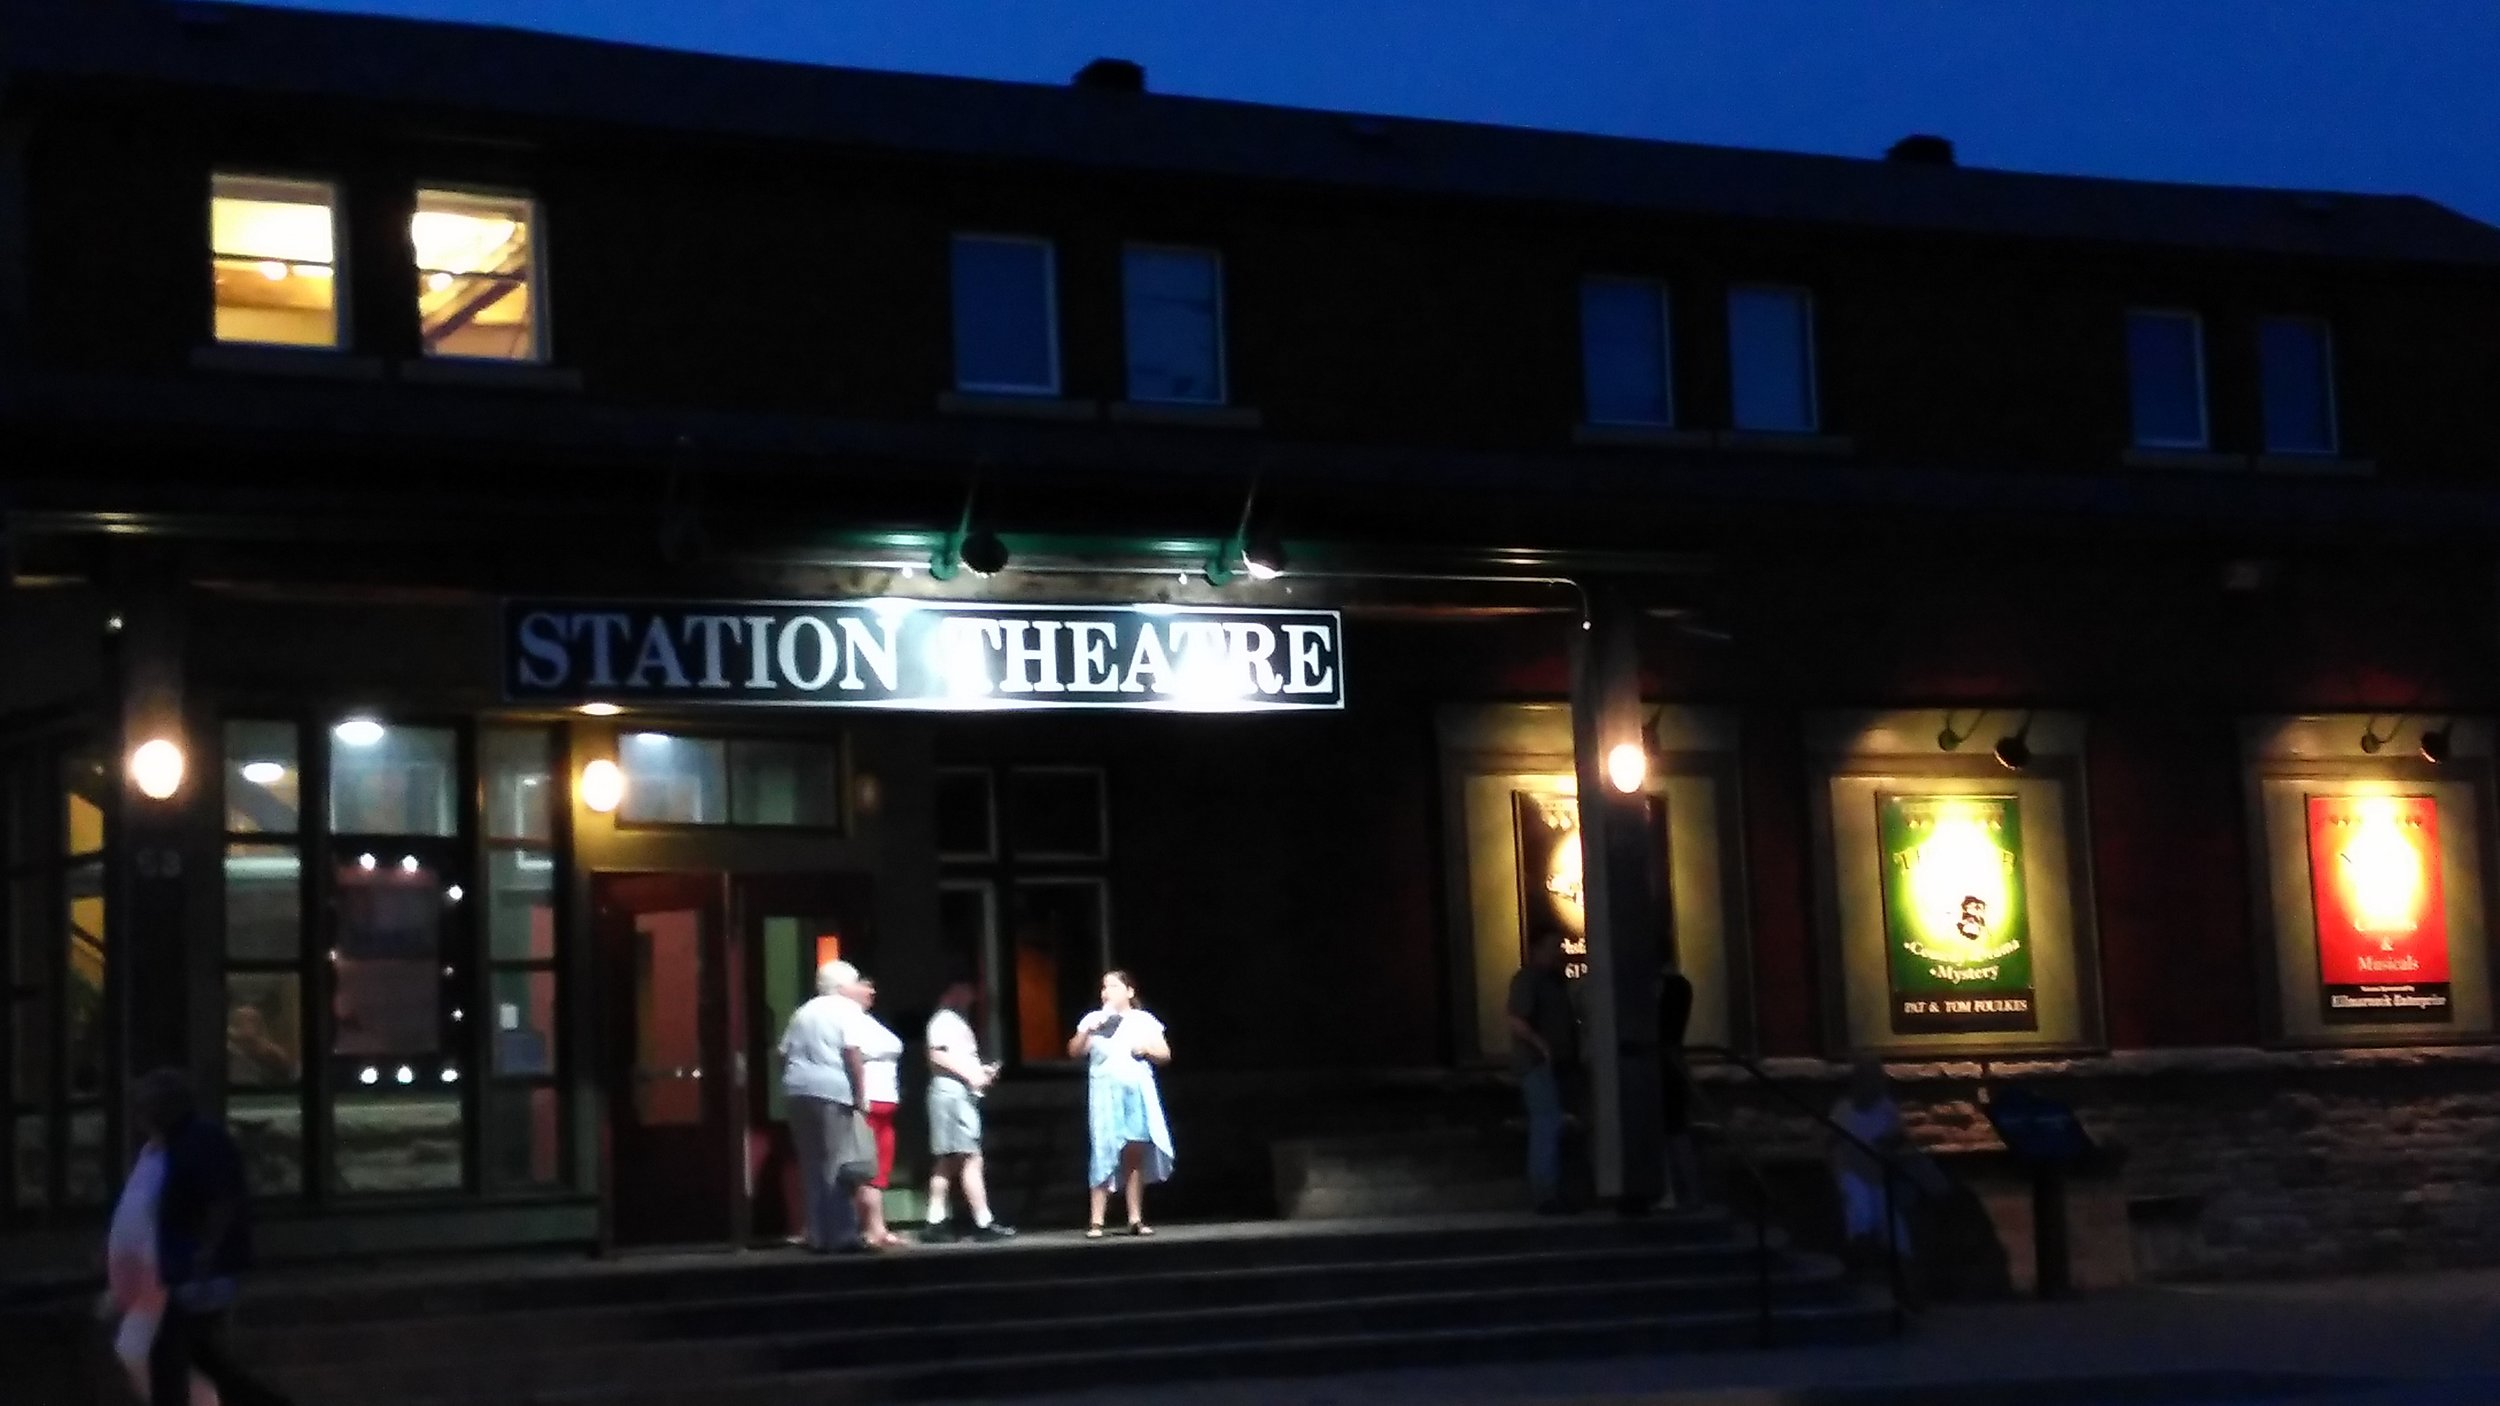 Station Theatre, Smiths Falls